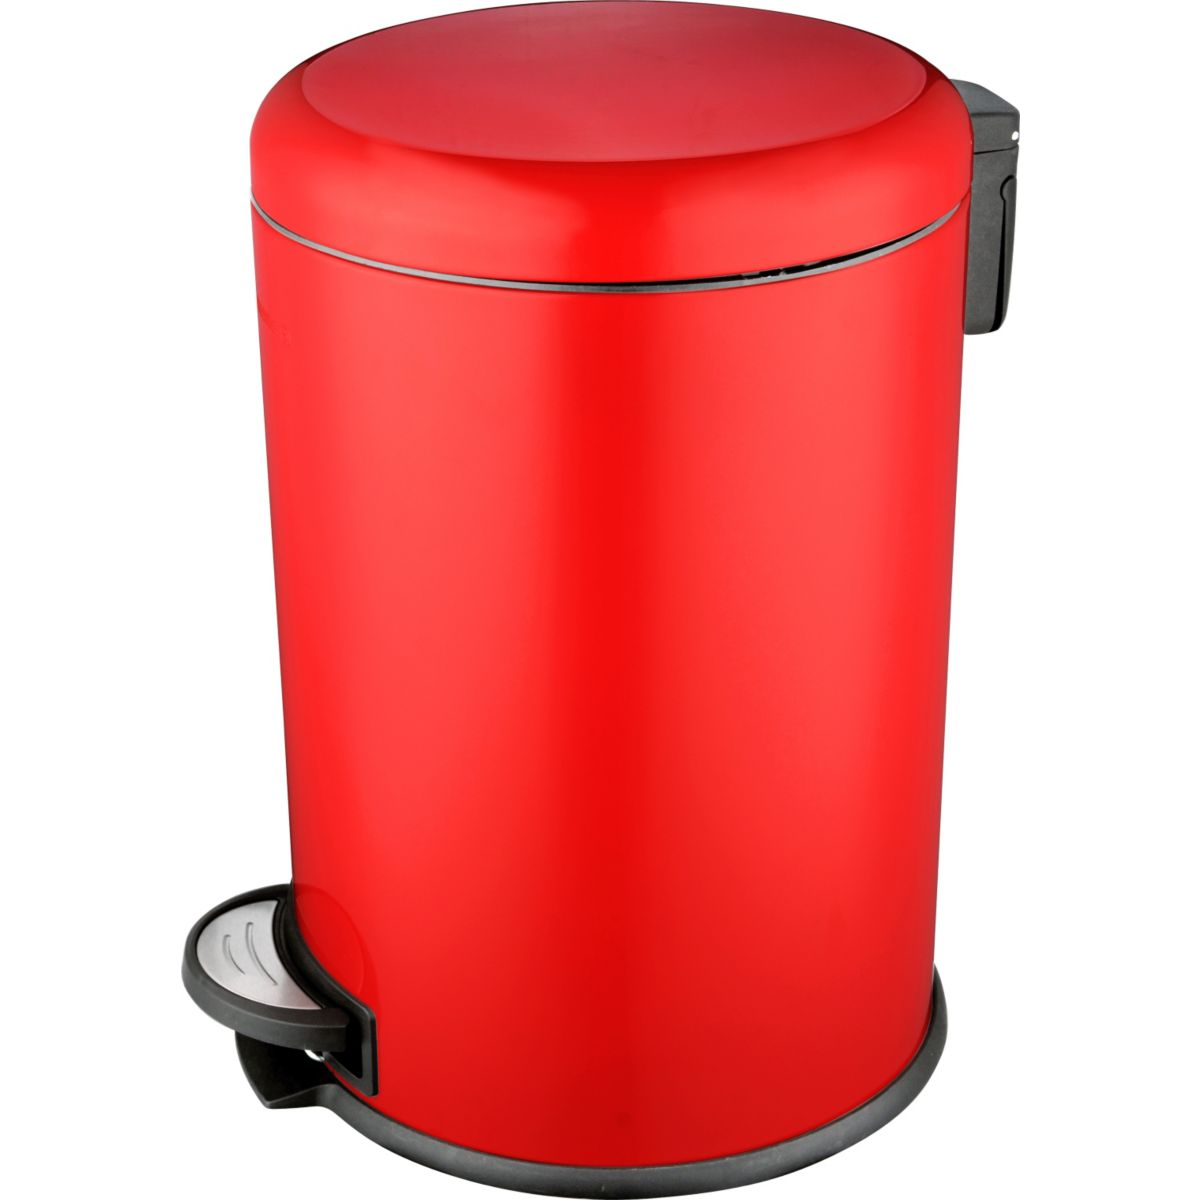 Poubelle ESSENTIELB ronde 20L Rouge à pé (photo)